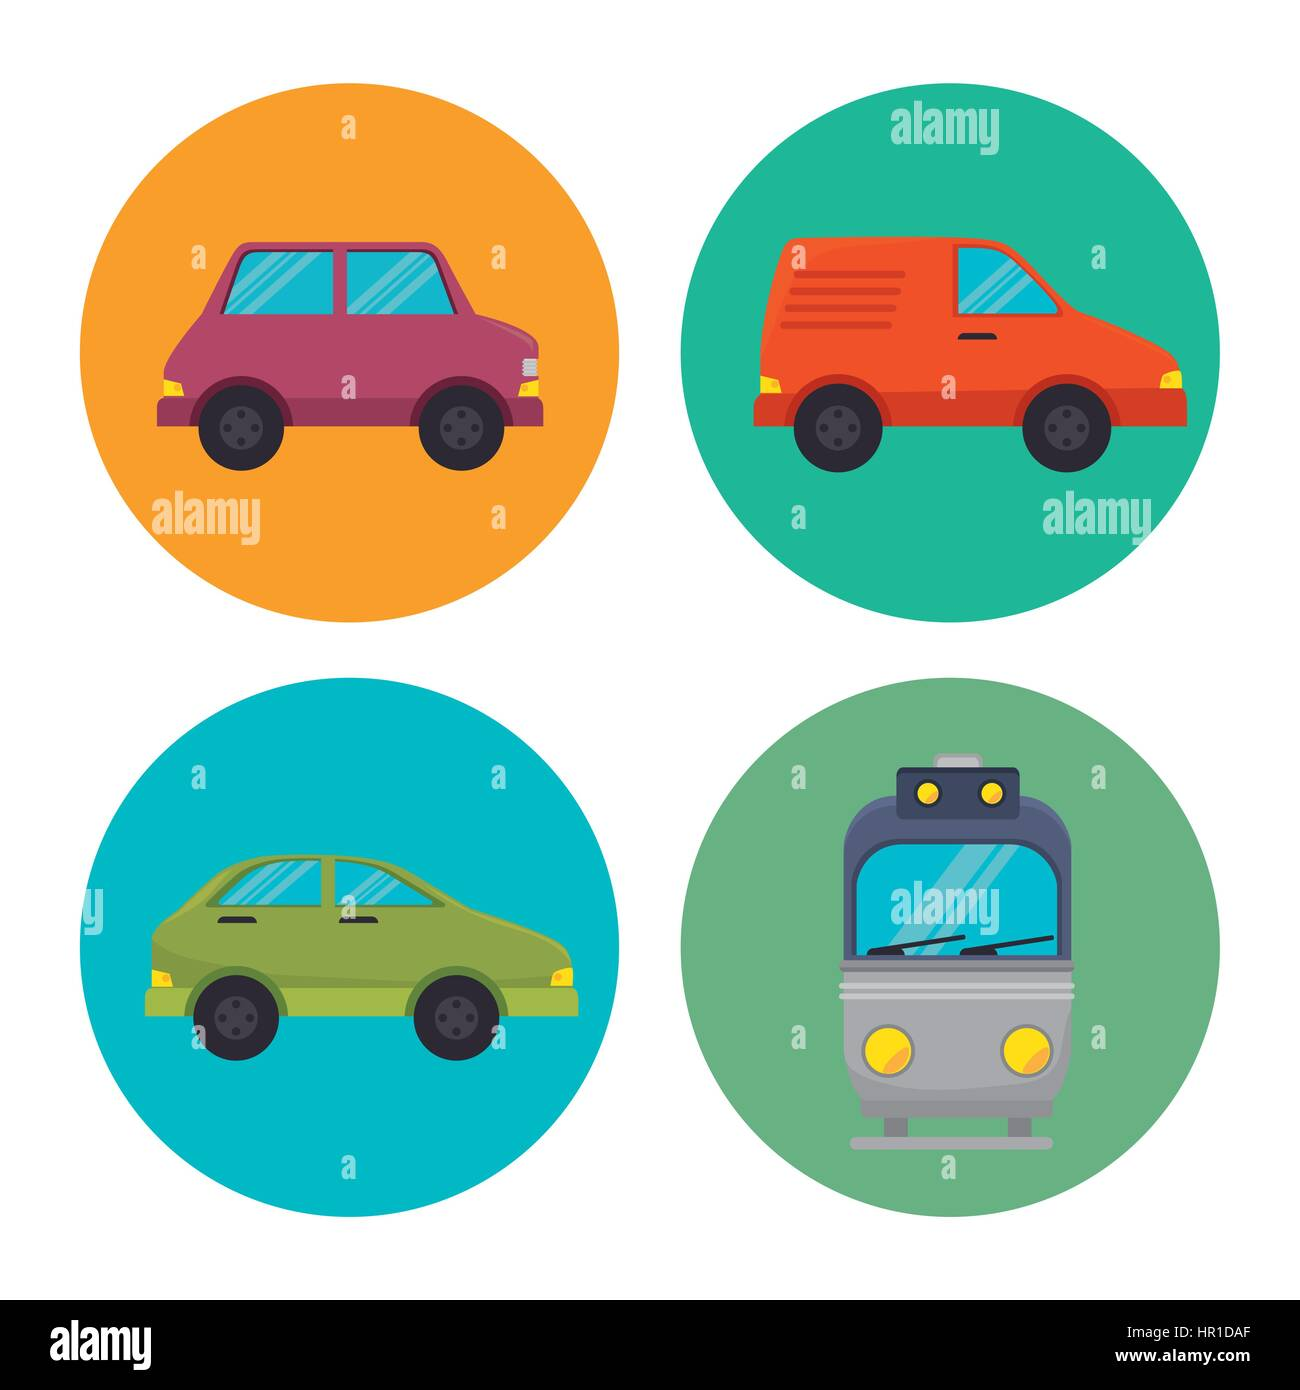 means of transport icons - Stock Image